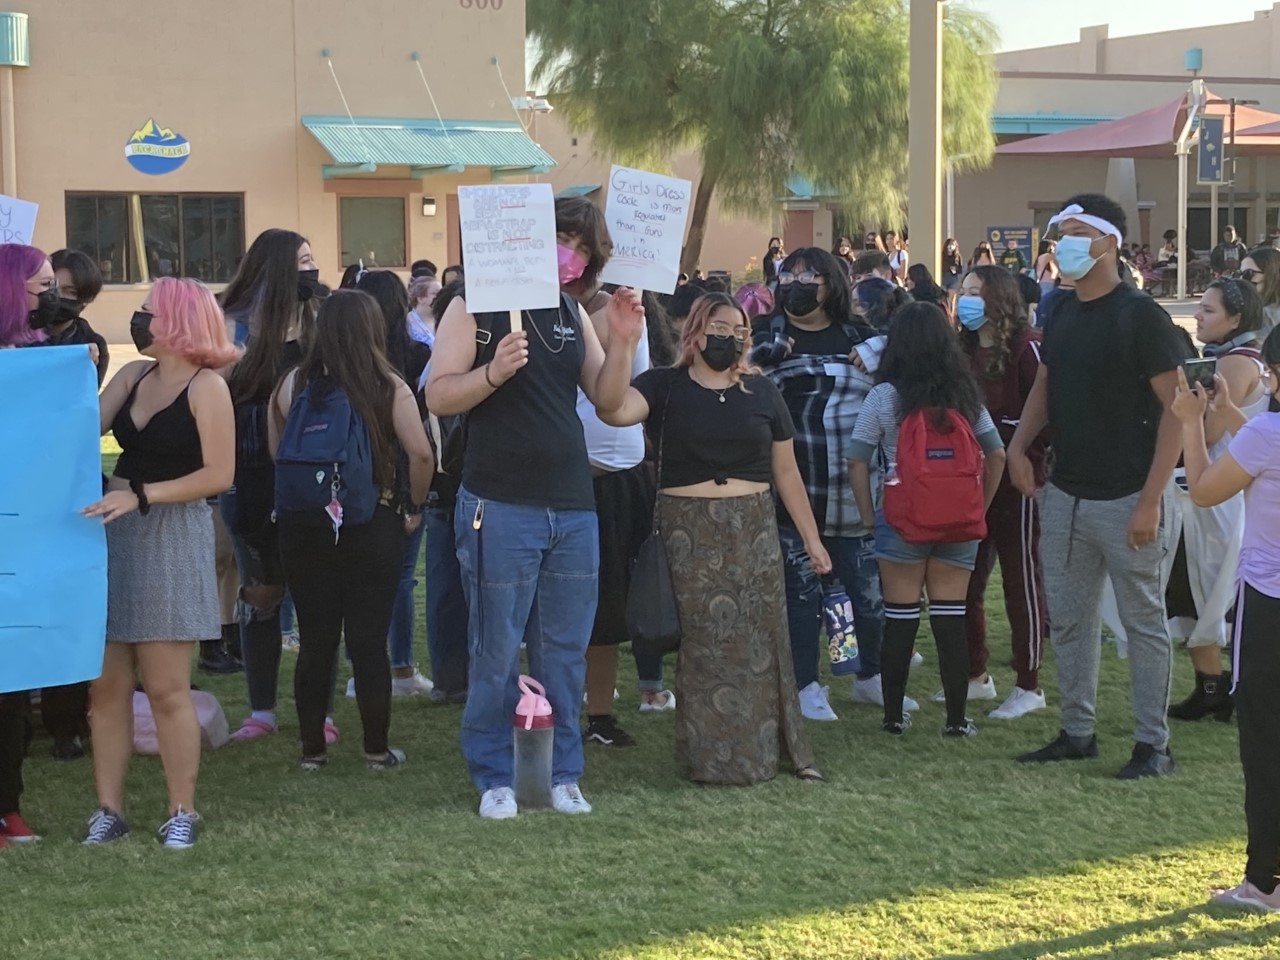 Group of High Schoolers Holding Multiple Feminism Signs in Protest